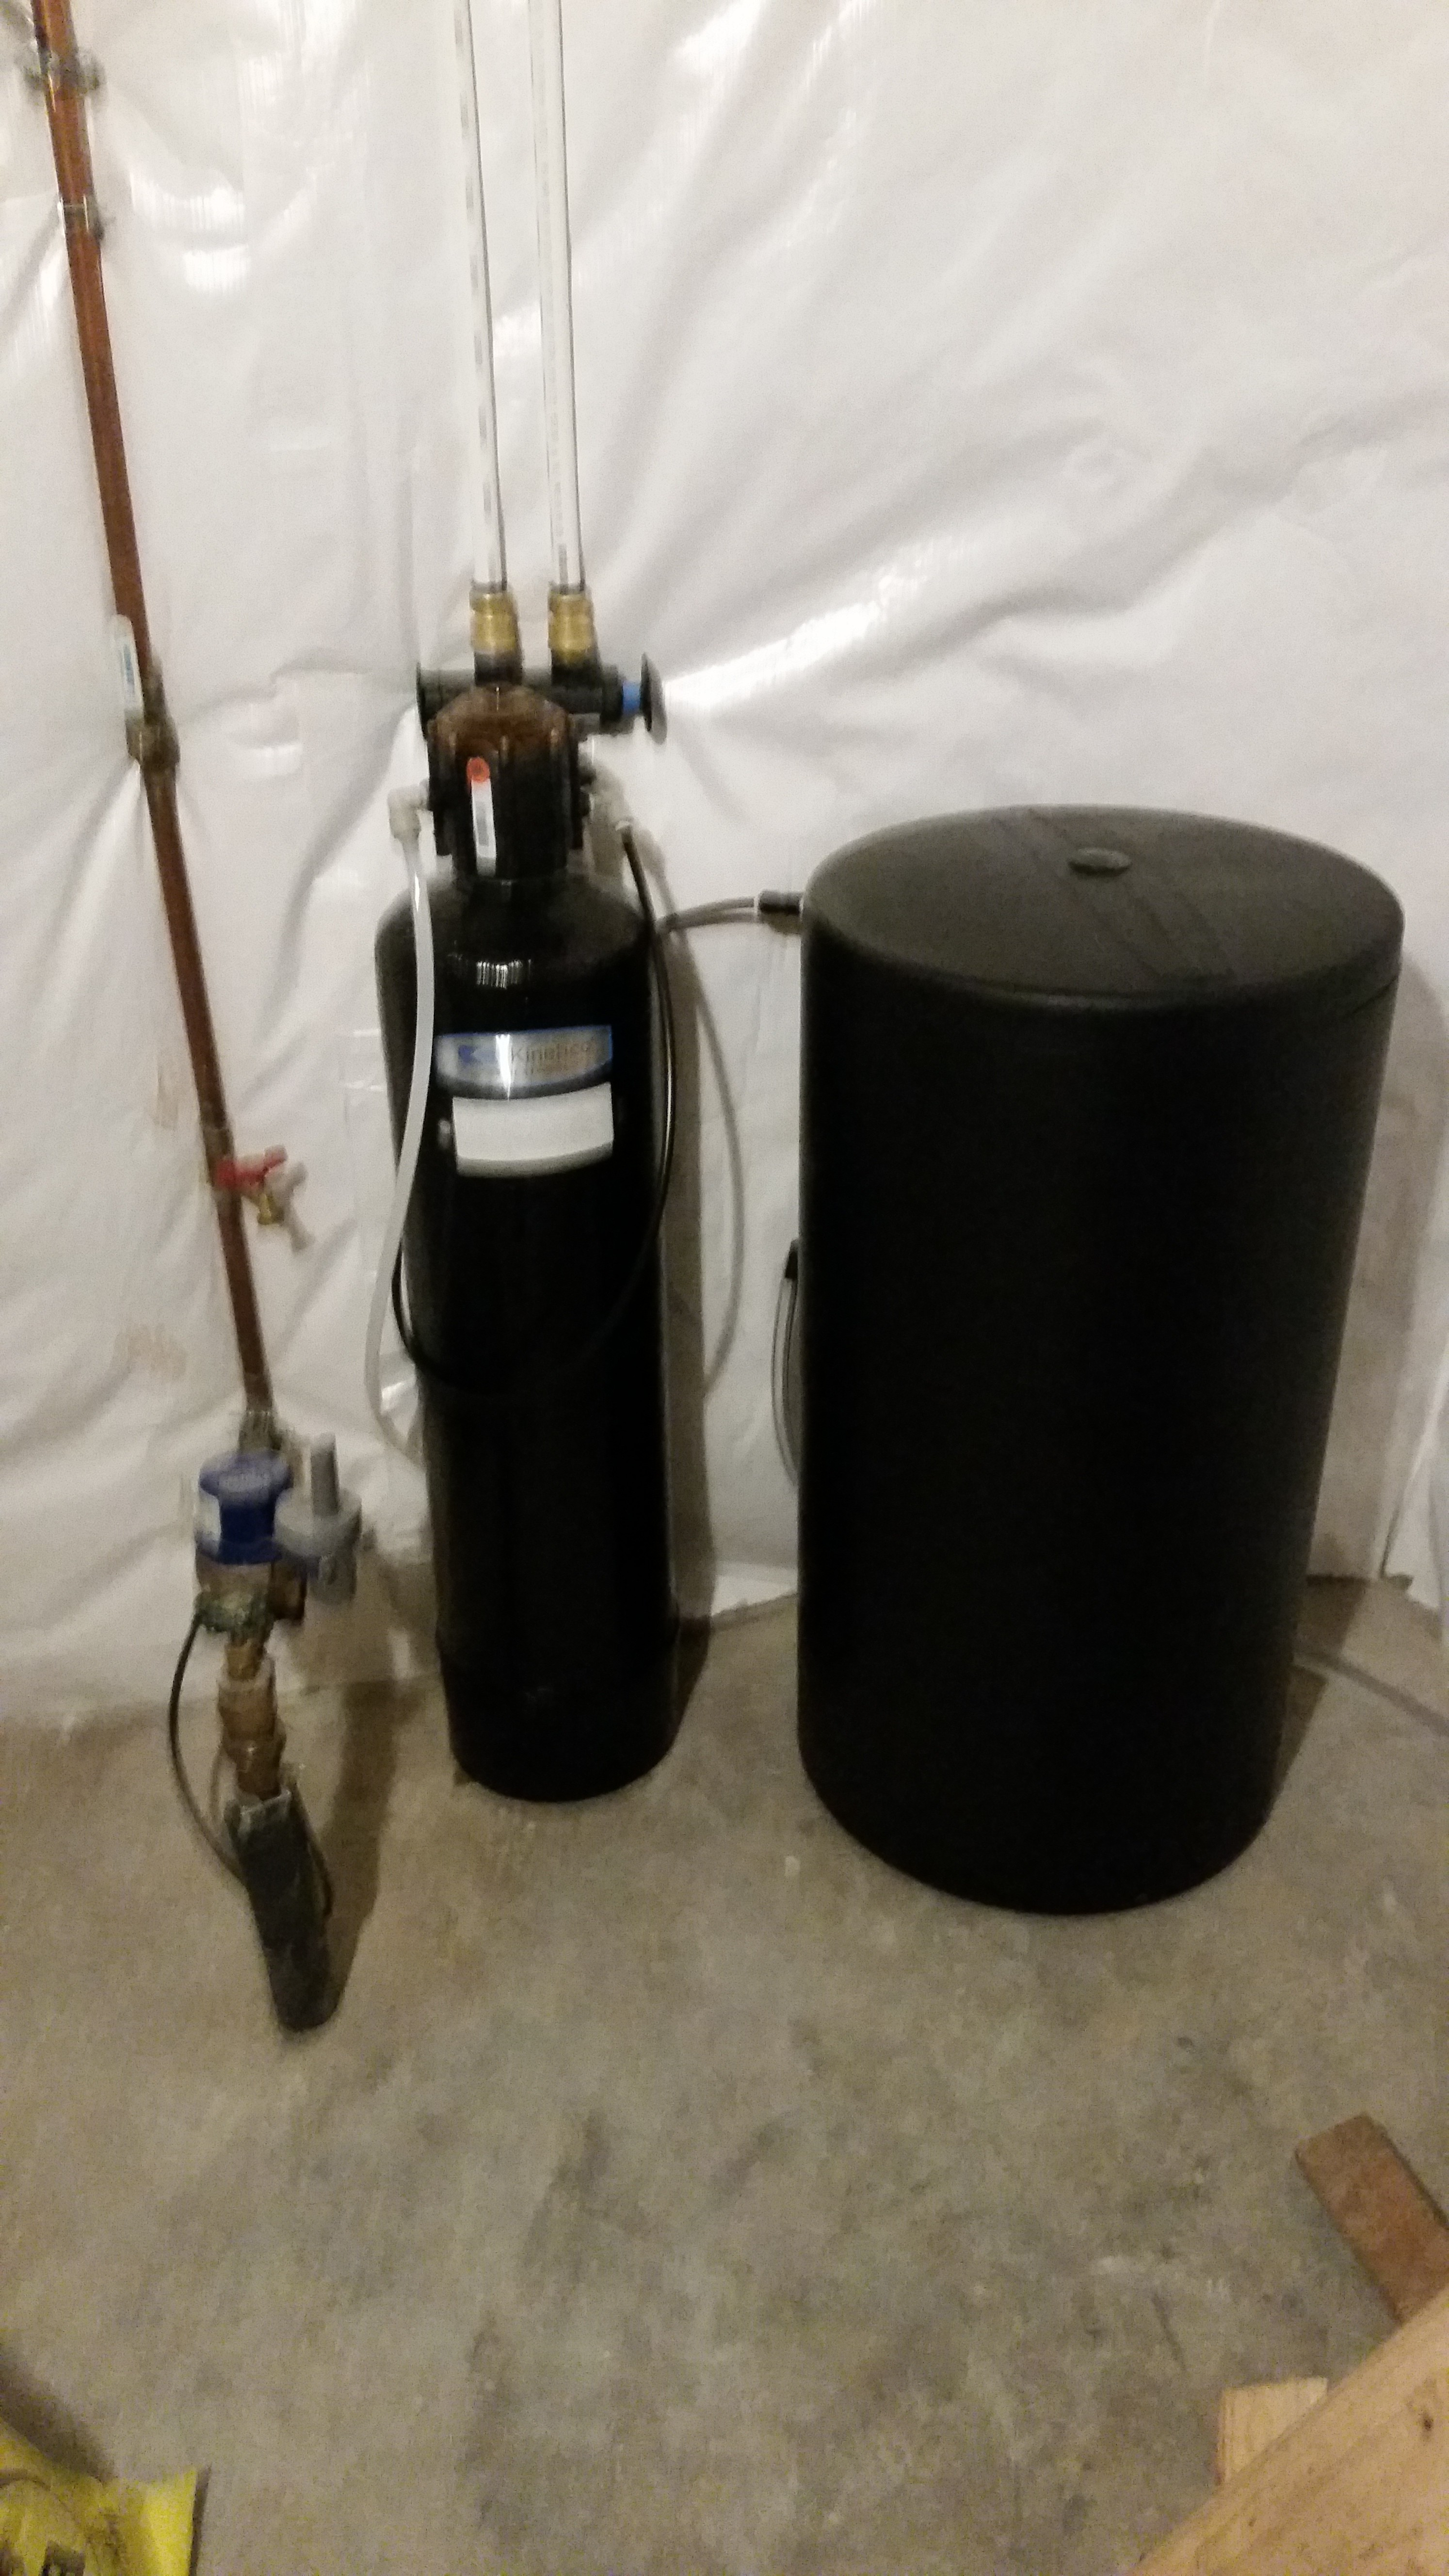 Kinetico water softener installed in Bettendorf, Iowa